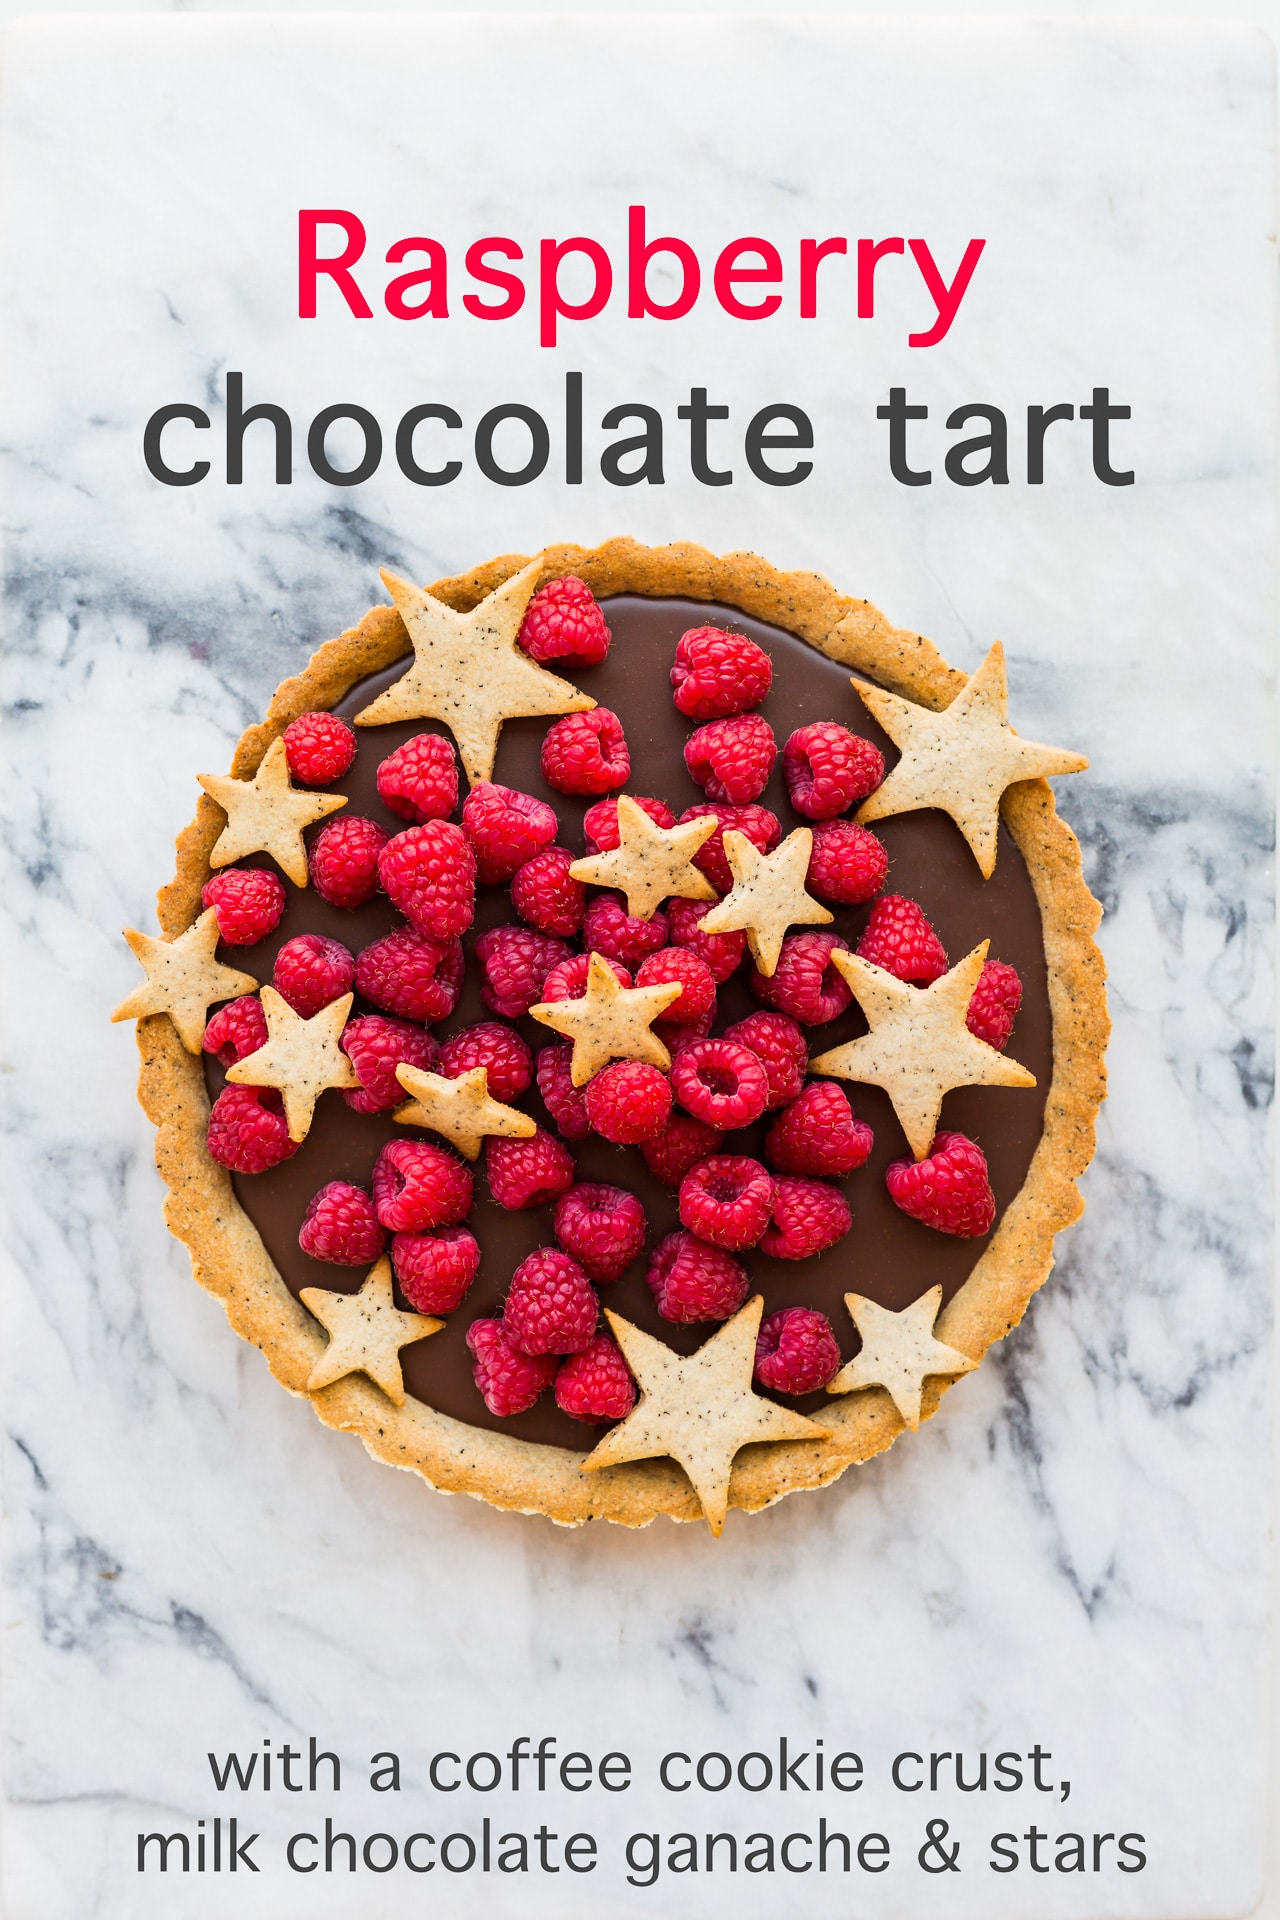 Raspberry chocolate tart with a milk chocolate ganache filling and a coffee cookie crust, decorated with fresh raspberries and star-shaped cookies